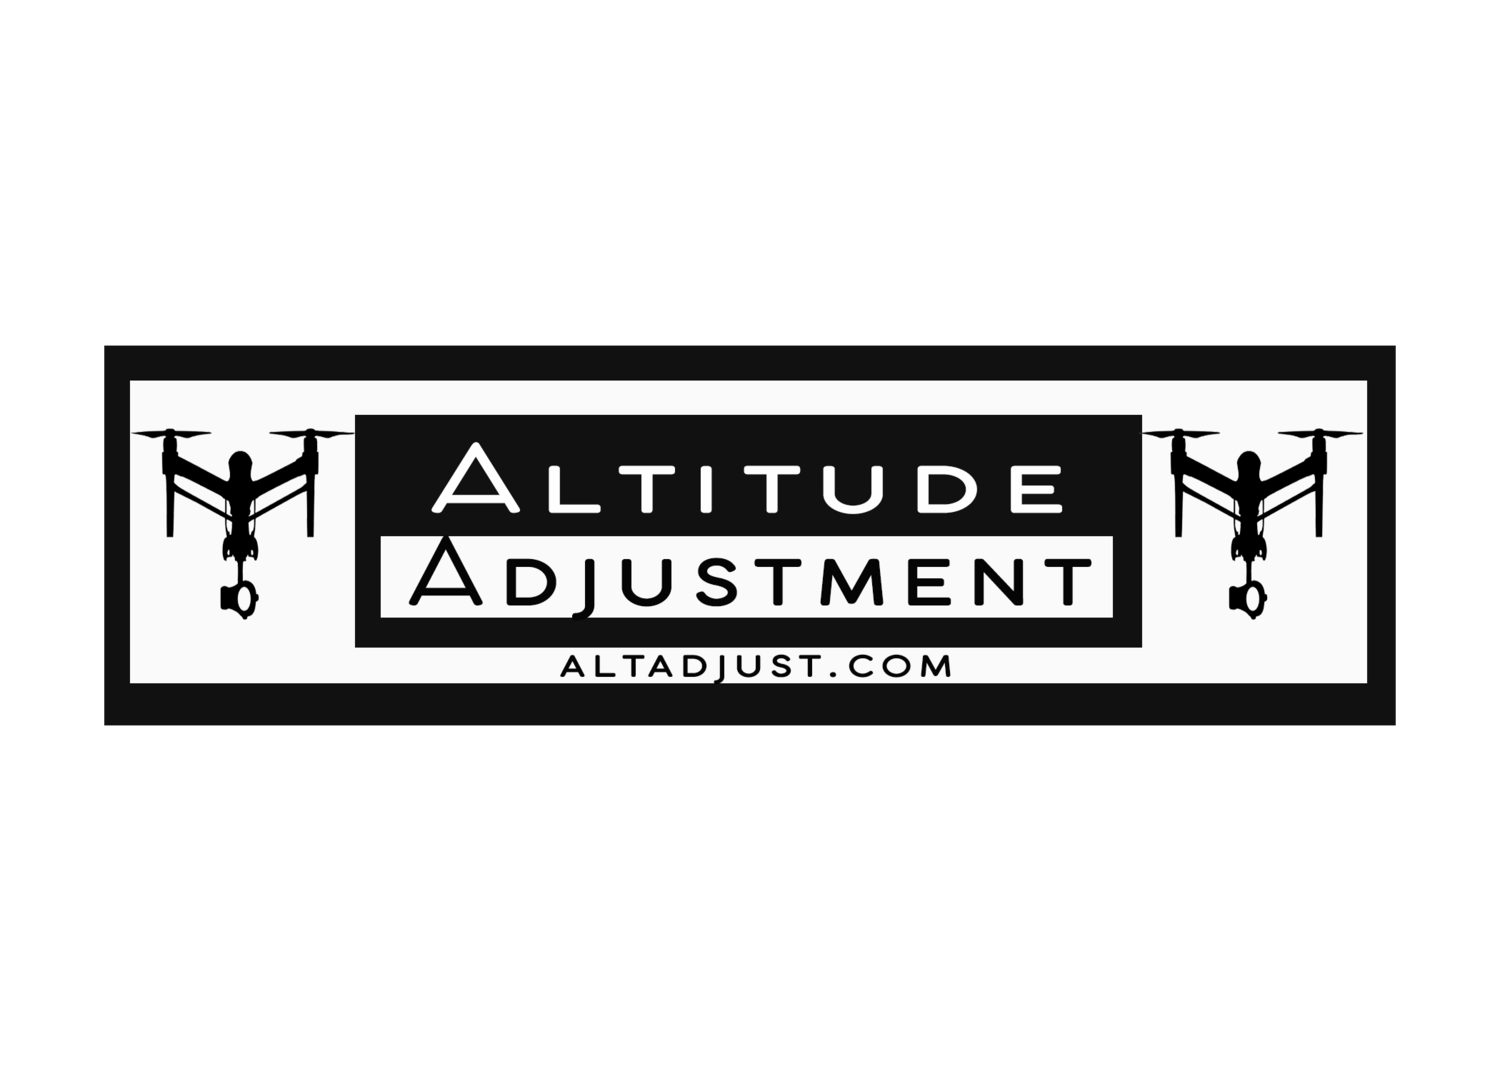 Altitude Adjustment LLC